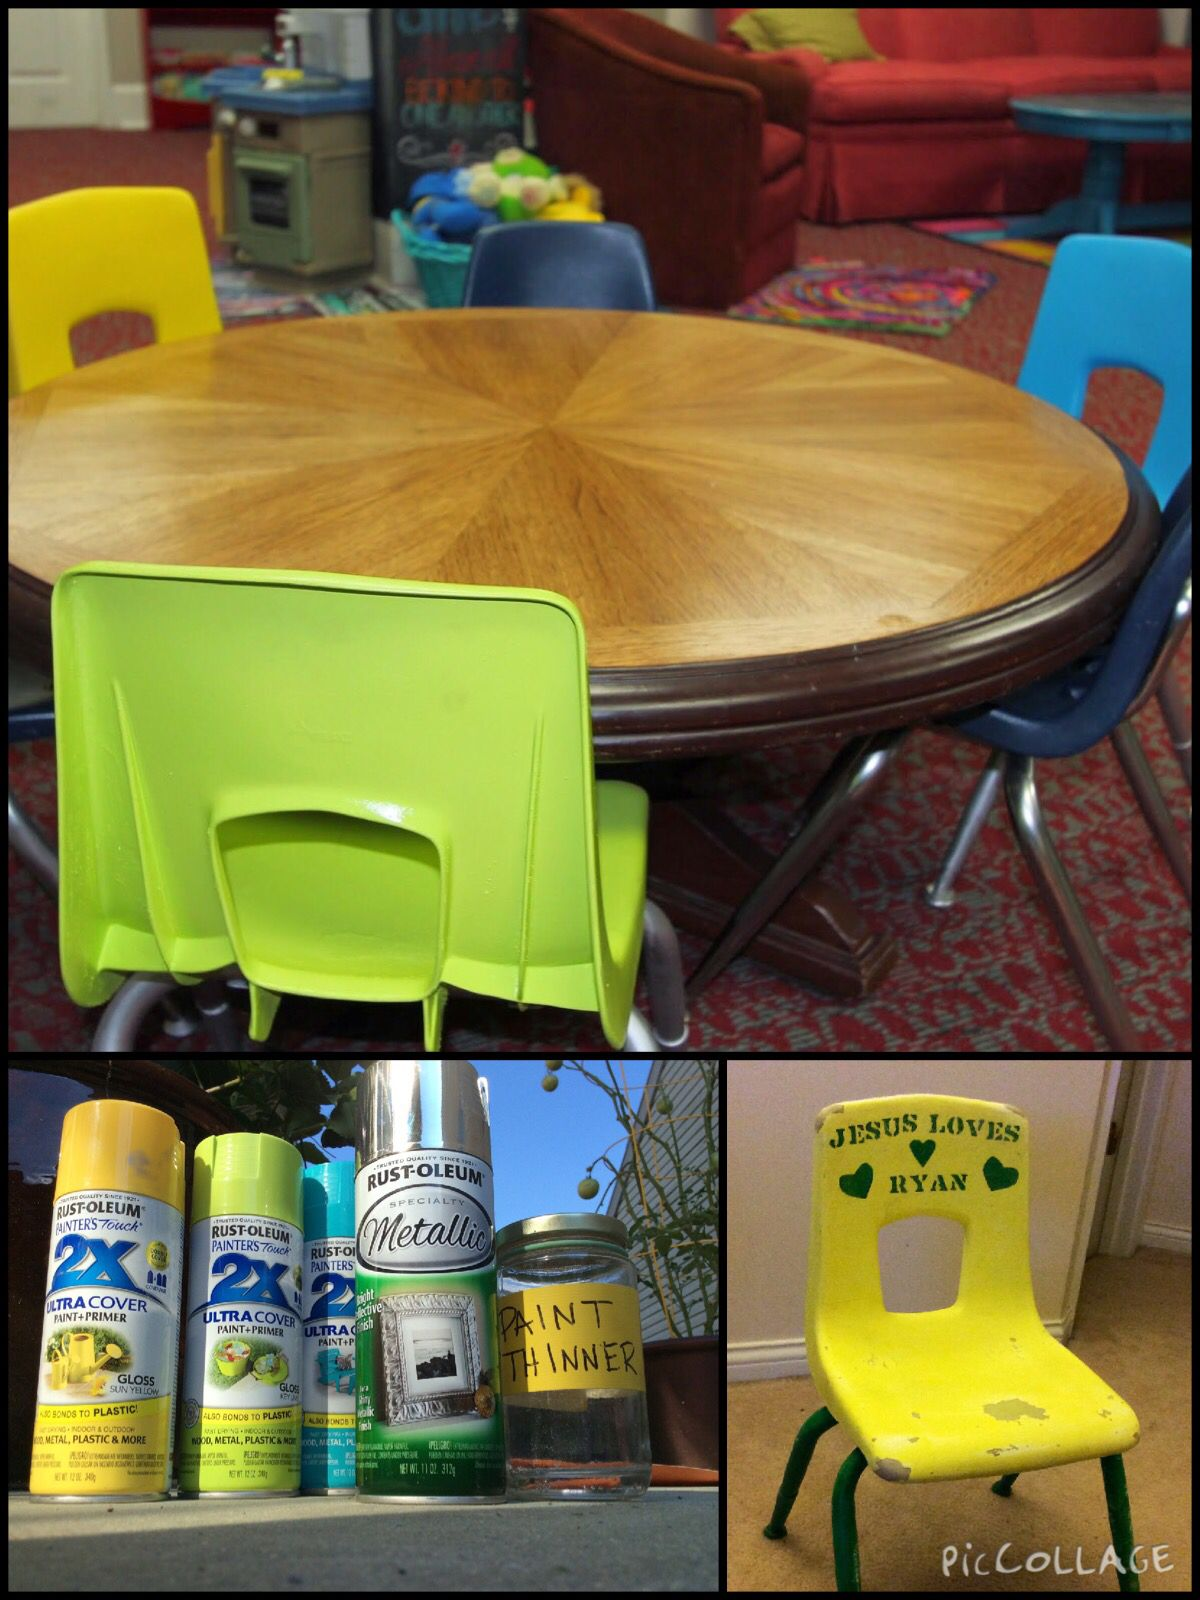 How To Paint Plastic Chairs Pool Chaise Lounge Walmart Repaint Little For New Look Must Use Primer I Used Automotive Extra Strength Two Coats Of Rustoleum Painters Touch 2x Ultra